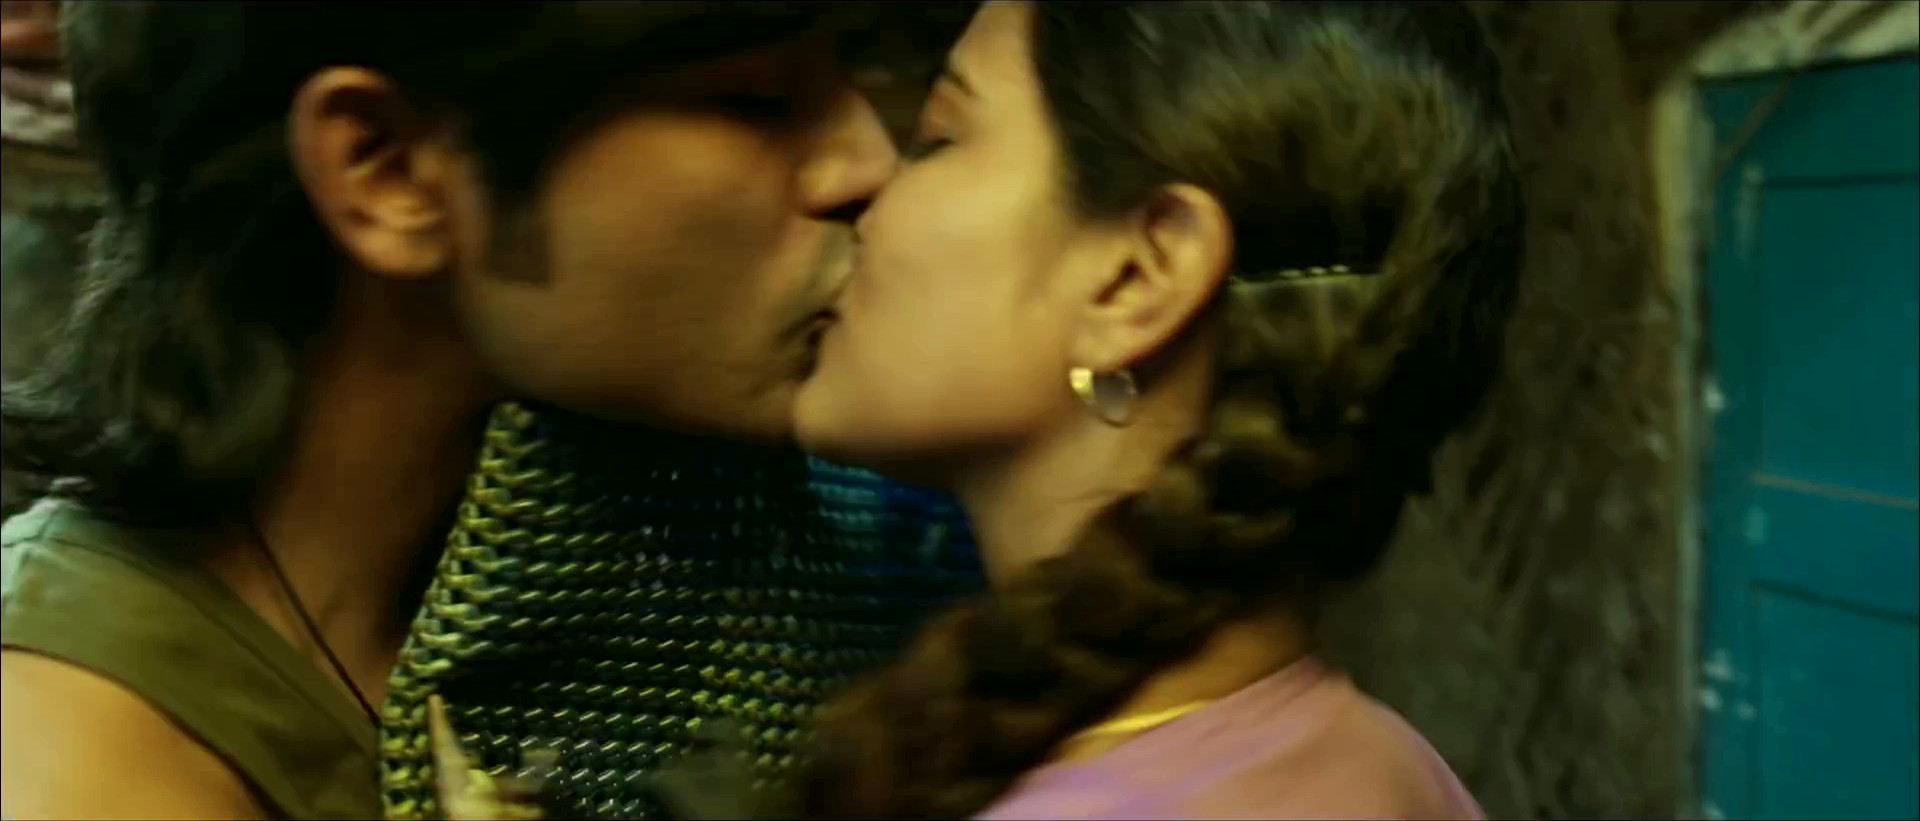 Chennai girl kiss